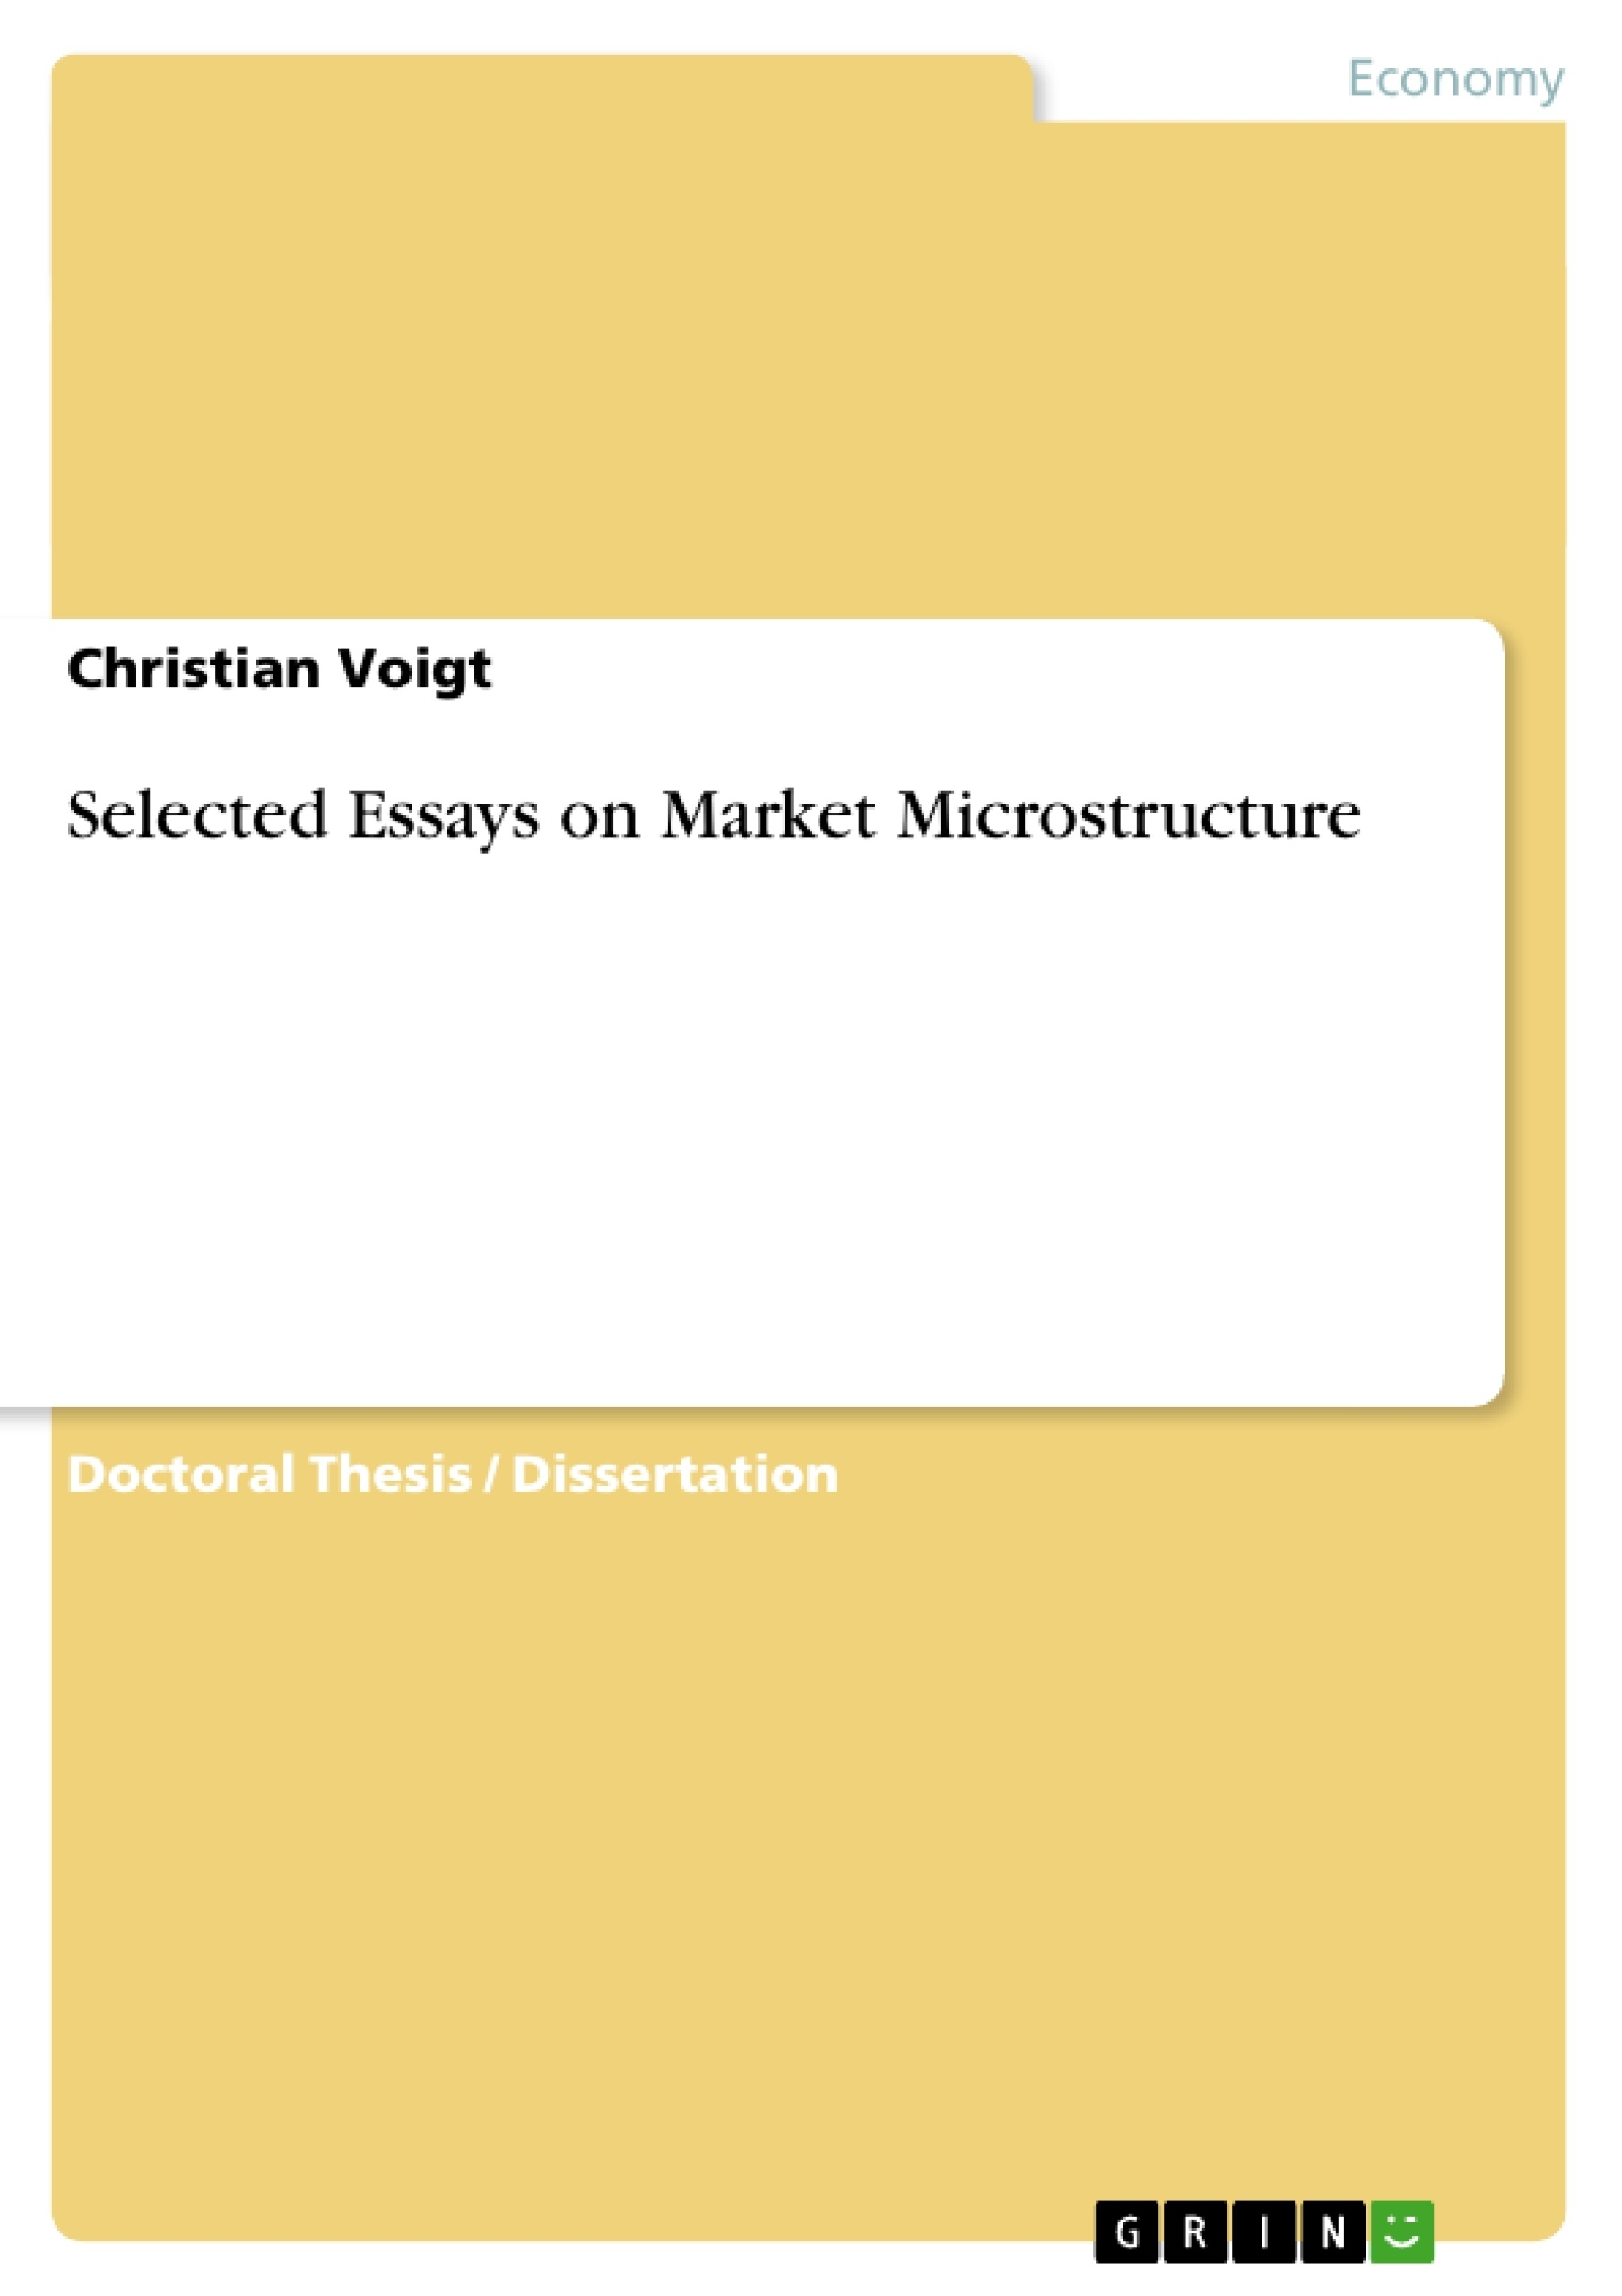 Title: Selected Essays on Market Microstructure